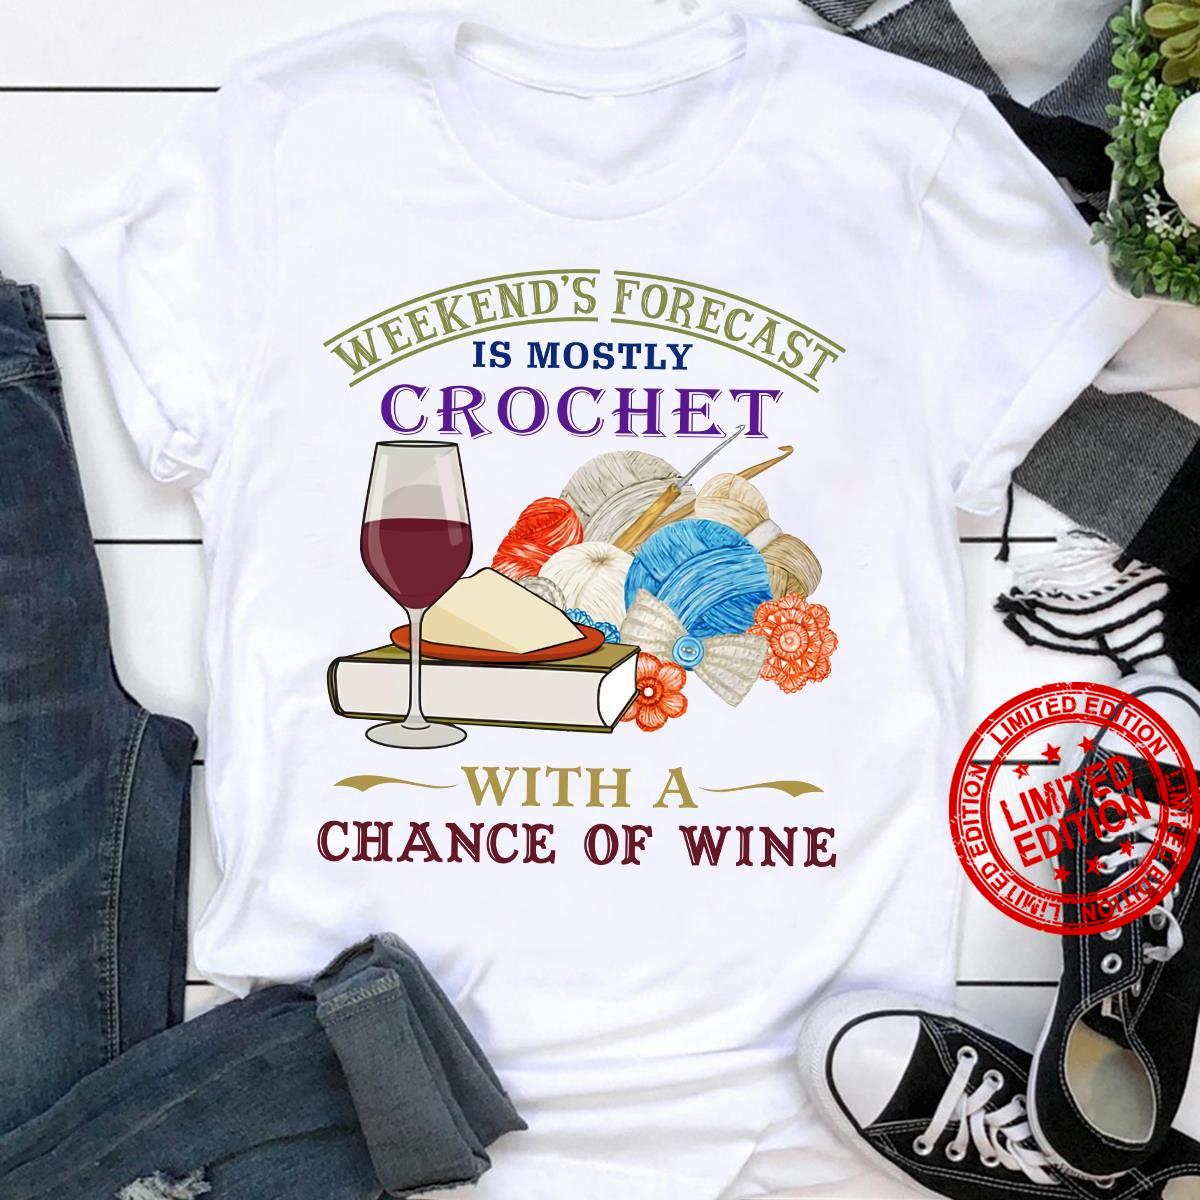 Weekend's Forecast Is Mostly Crochet With A Chance Of Wine Shirt